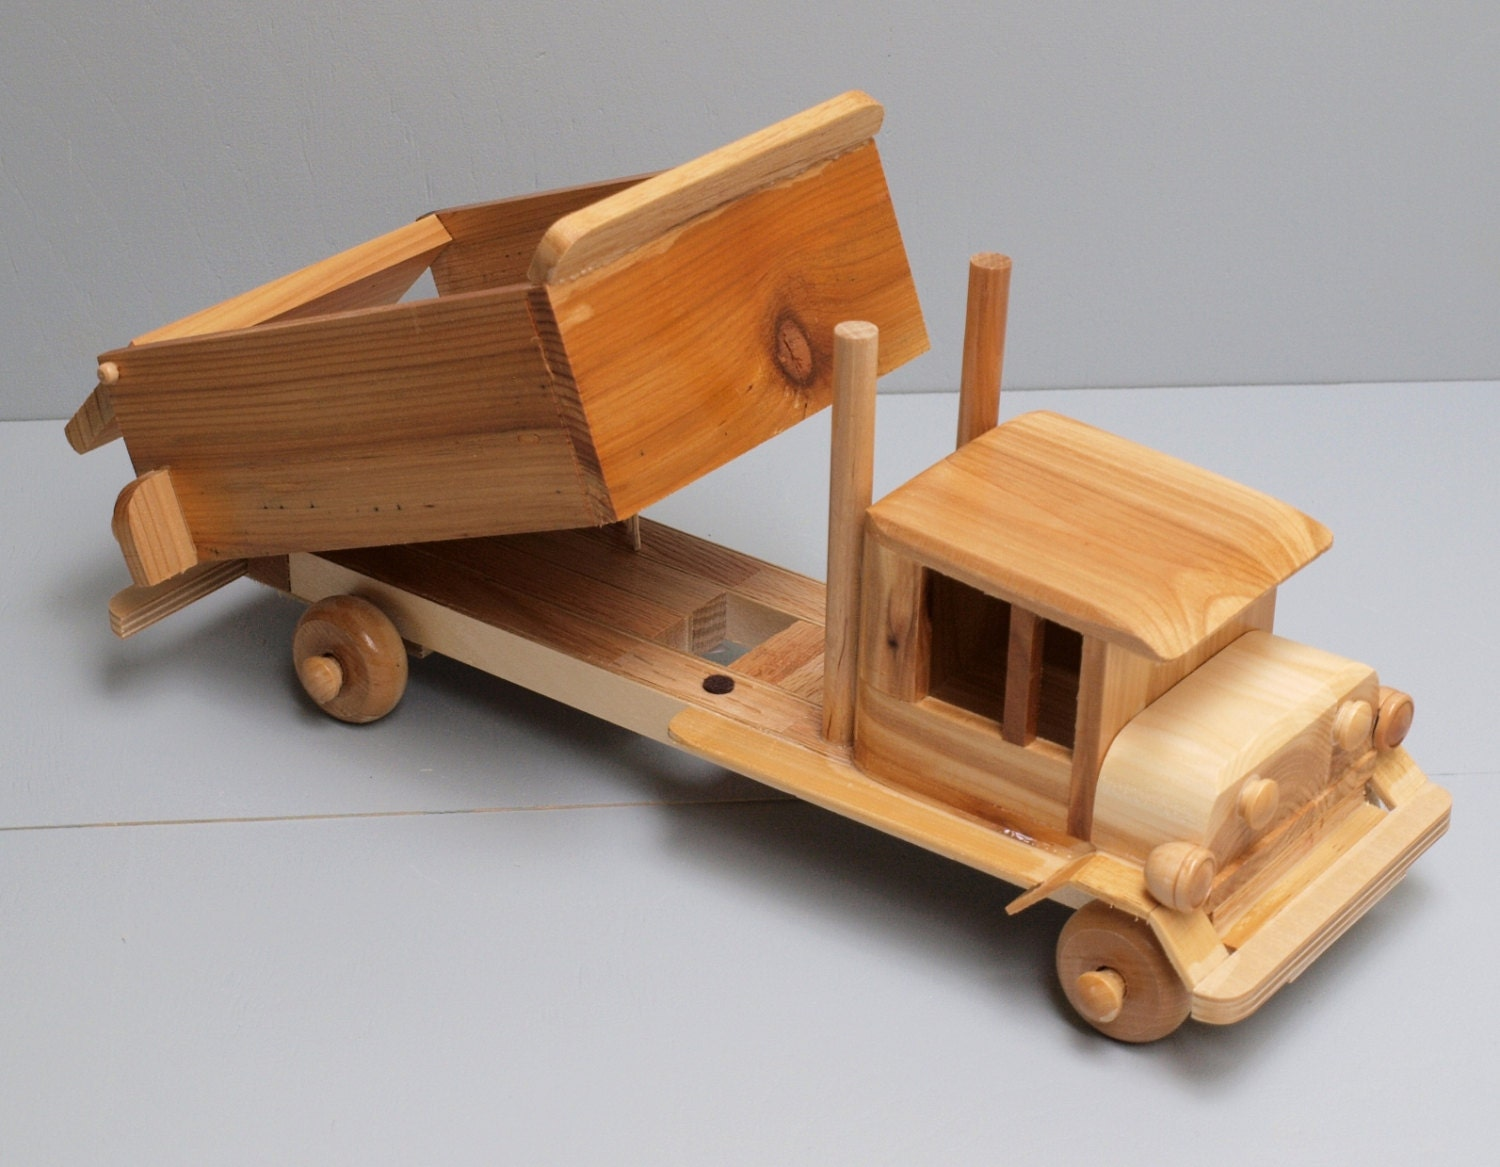 Wooden Toy Trucks : Large toy wooden dumptruck car reclaimed wood kid s